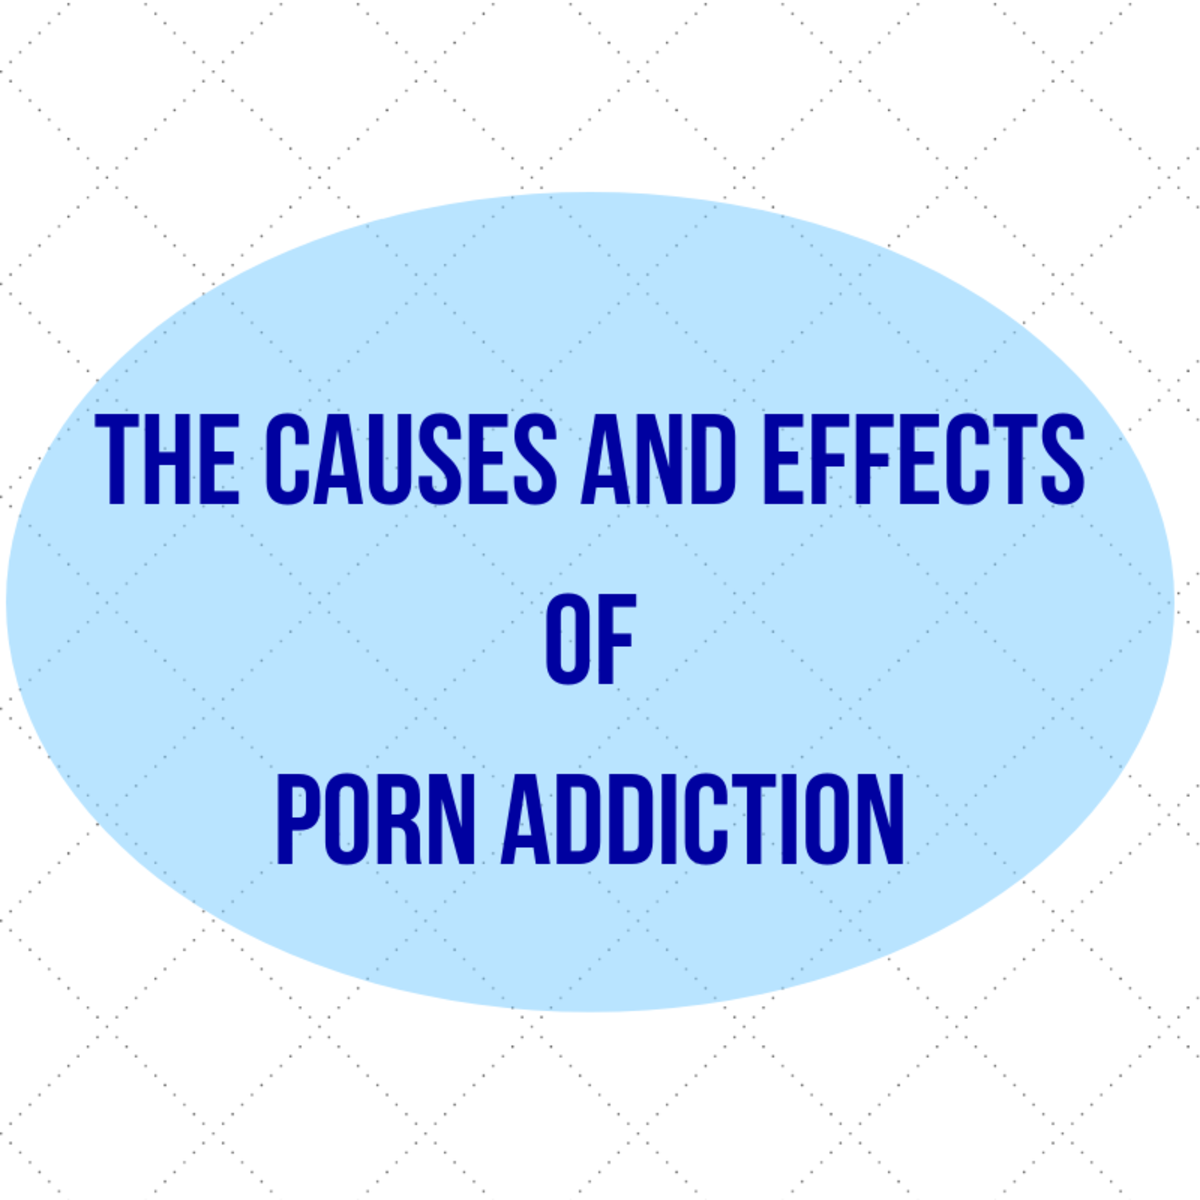 Porn addiction increased in recent years.